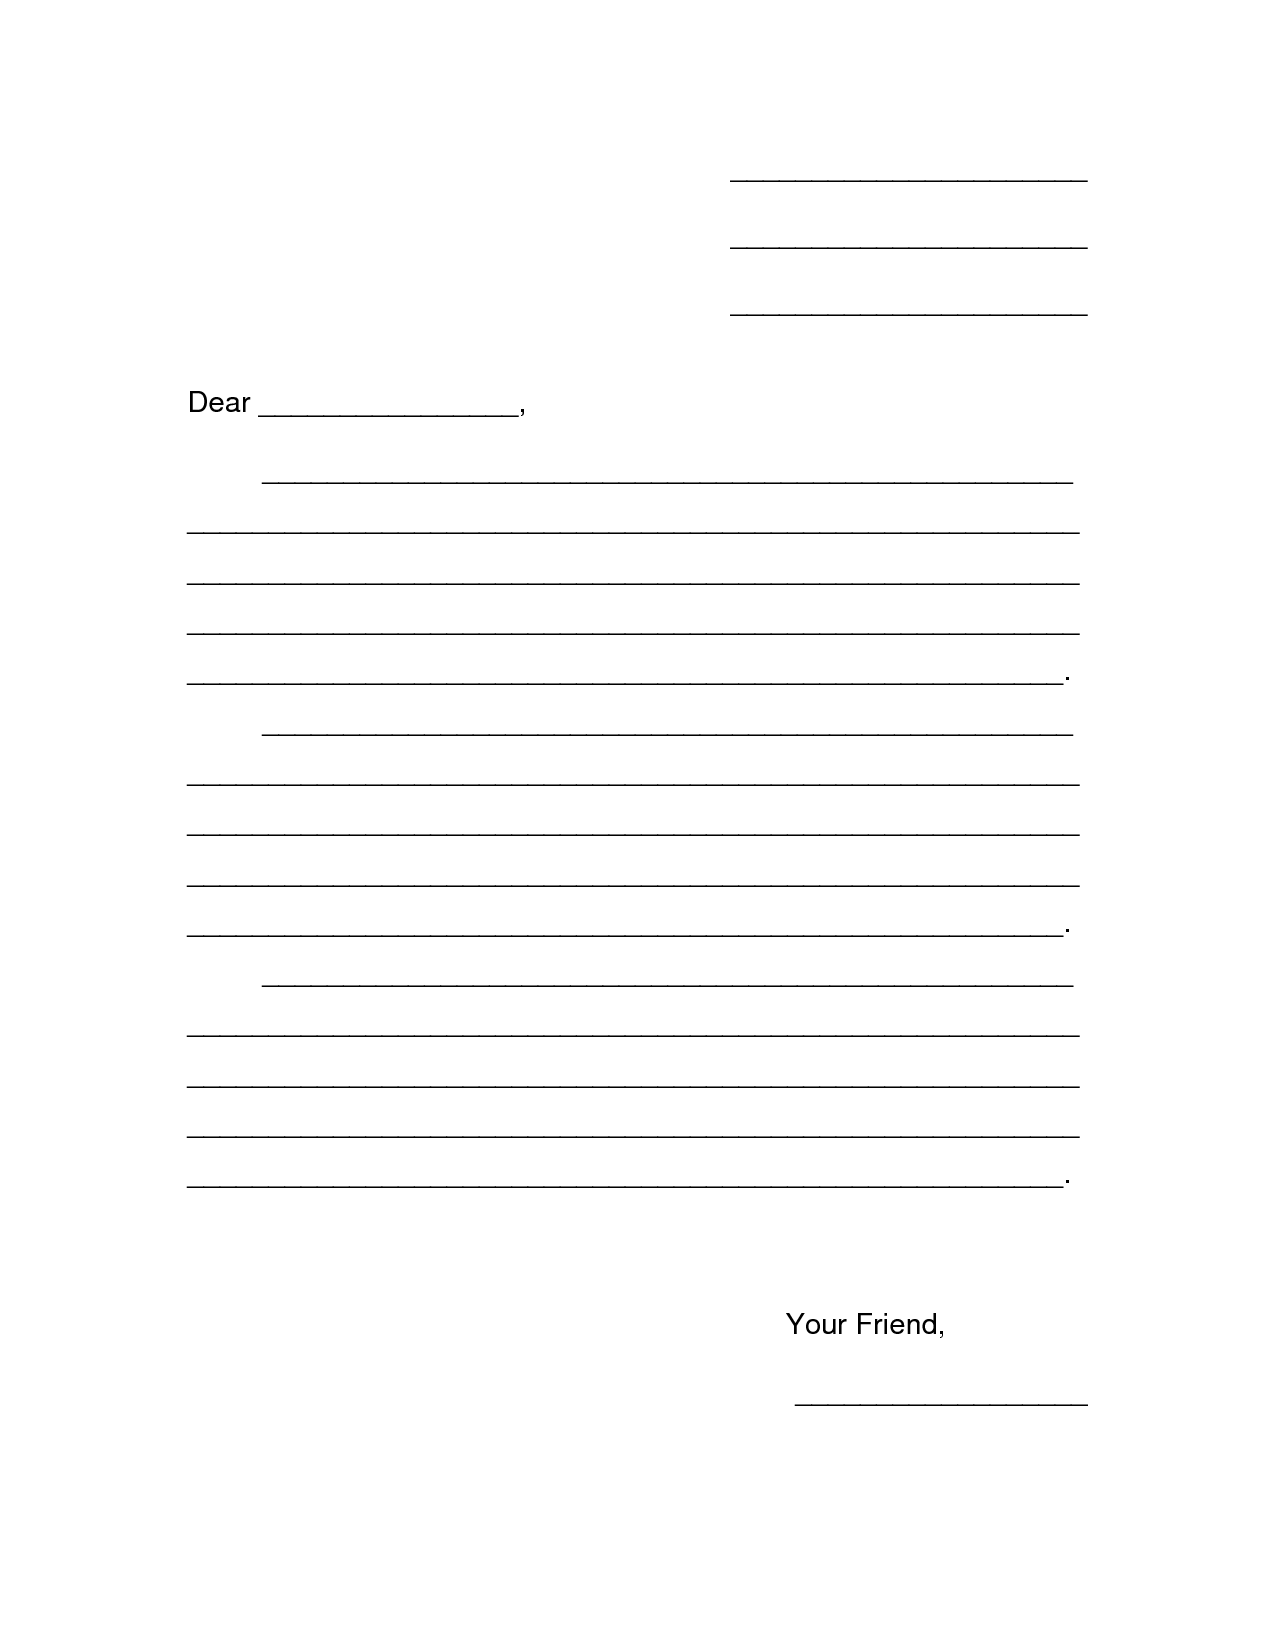 Letter Paper Template For Kids letter writing paper template for kids ...